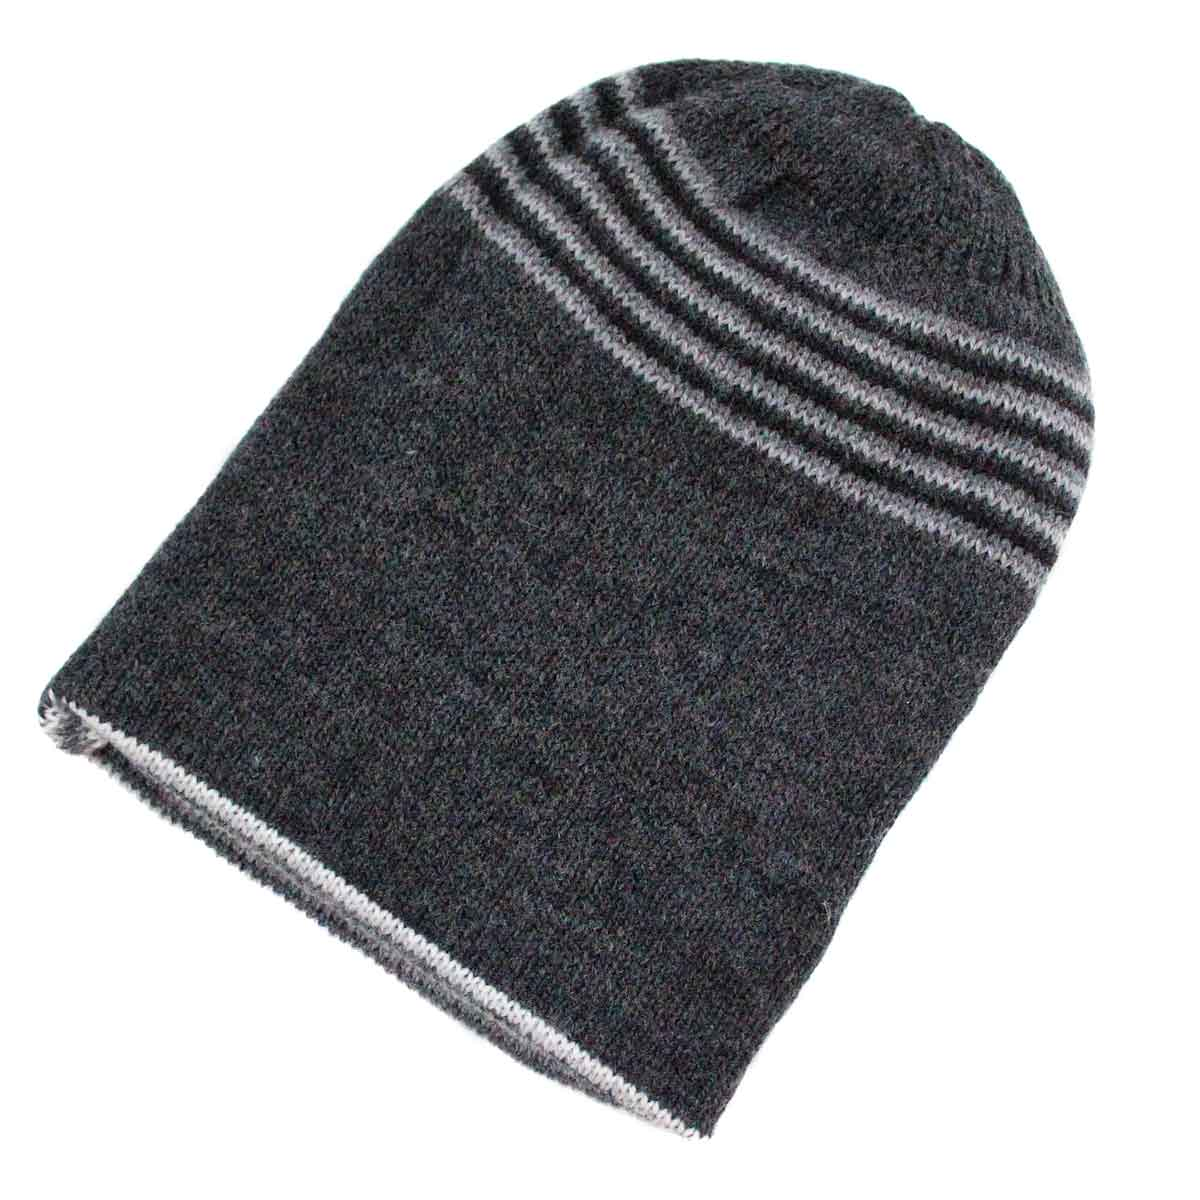 Inka-Products-Bonnet Réversible Alpaga-Gris Rayé-2